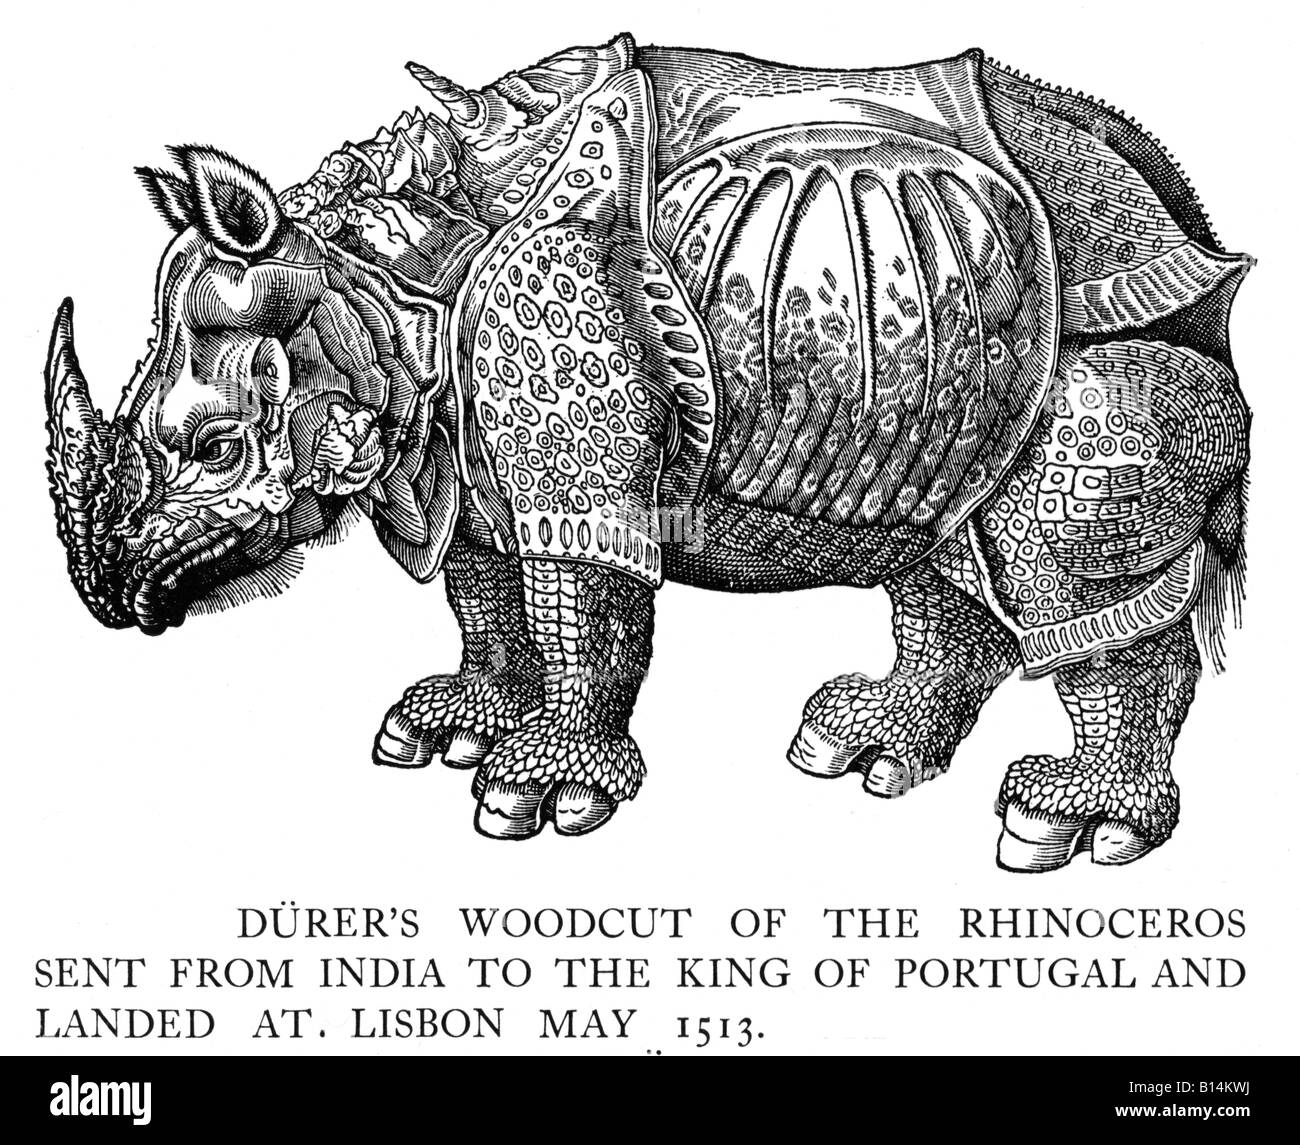 Rhinoceros Durers woodcut of the Rhinoceros from India landed at Lisbon 1513 engraved from a sketch sent to the - Stock Image